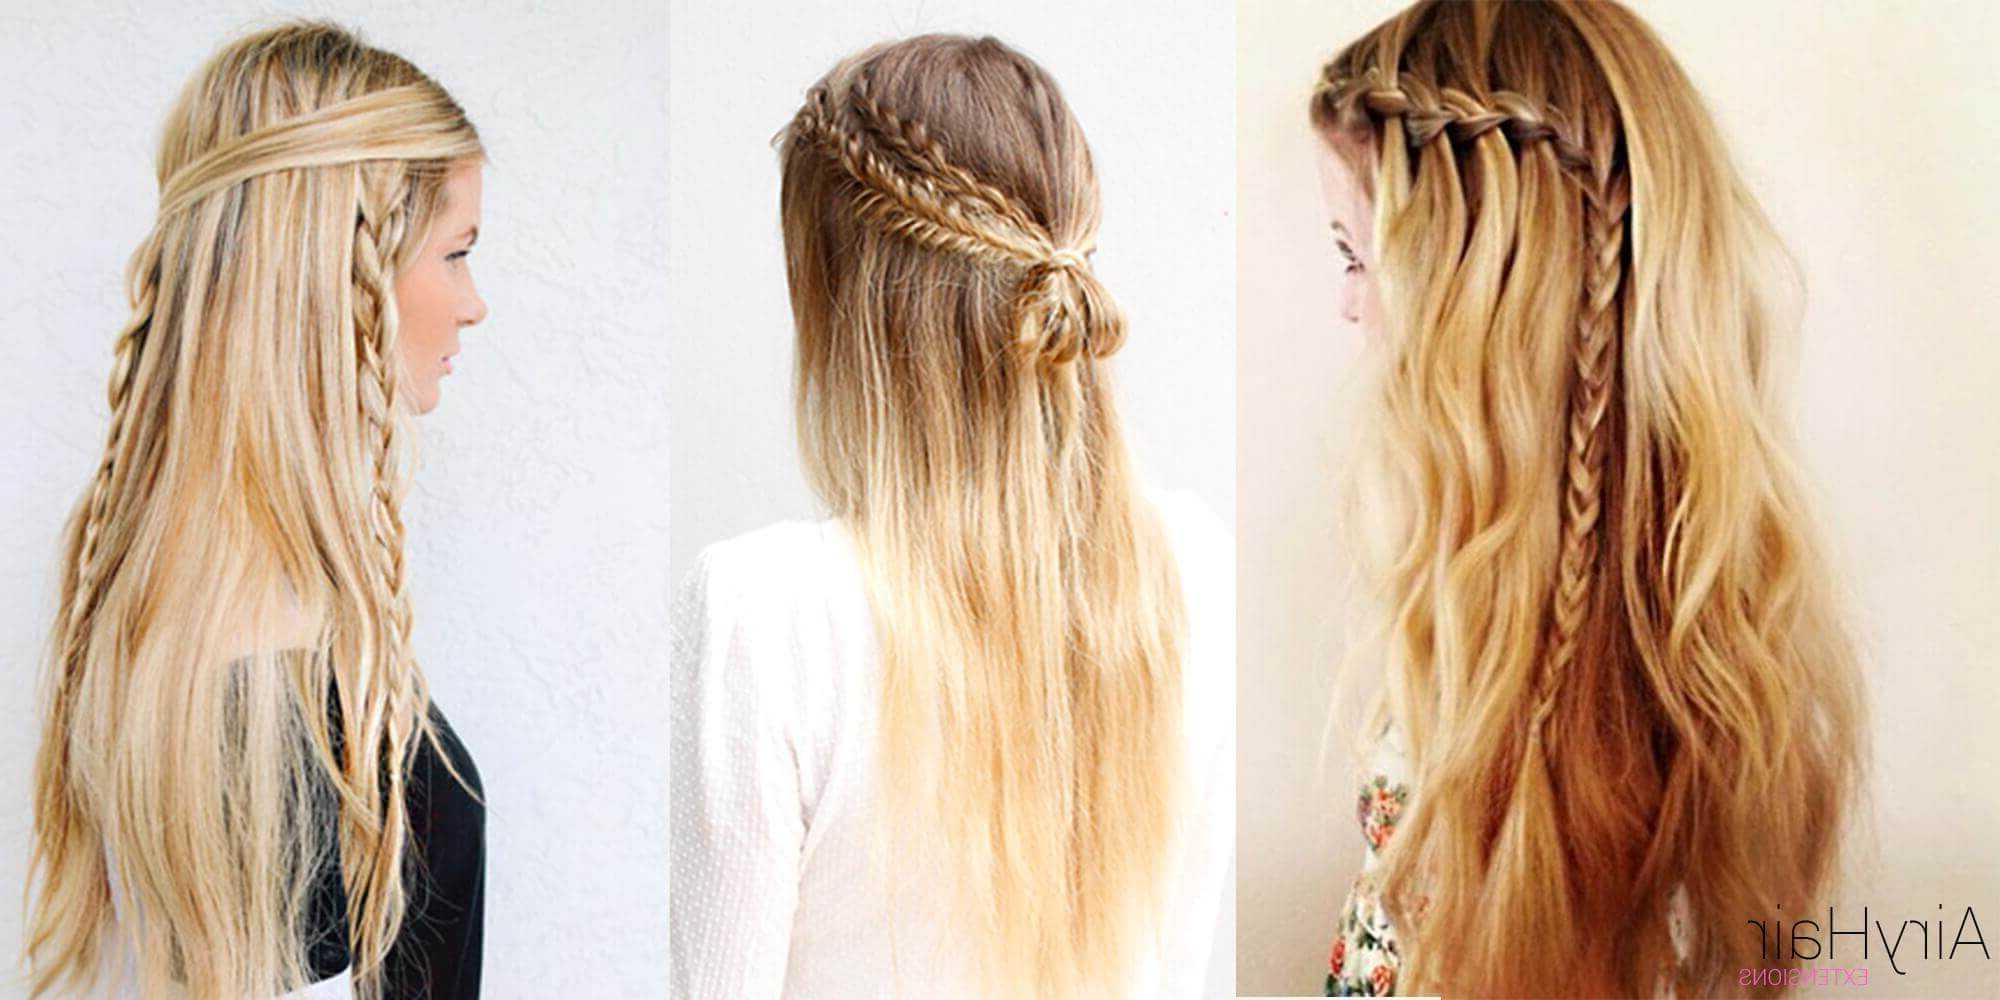 10 Best Chic And Creative Boho Hairstyles Intended For Most Recent Chic Bohemian Braid Hairstyles (View 2 of 20)